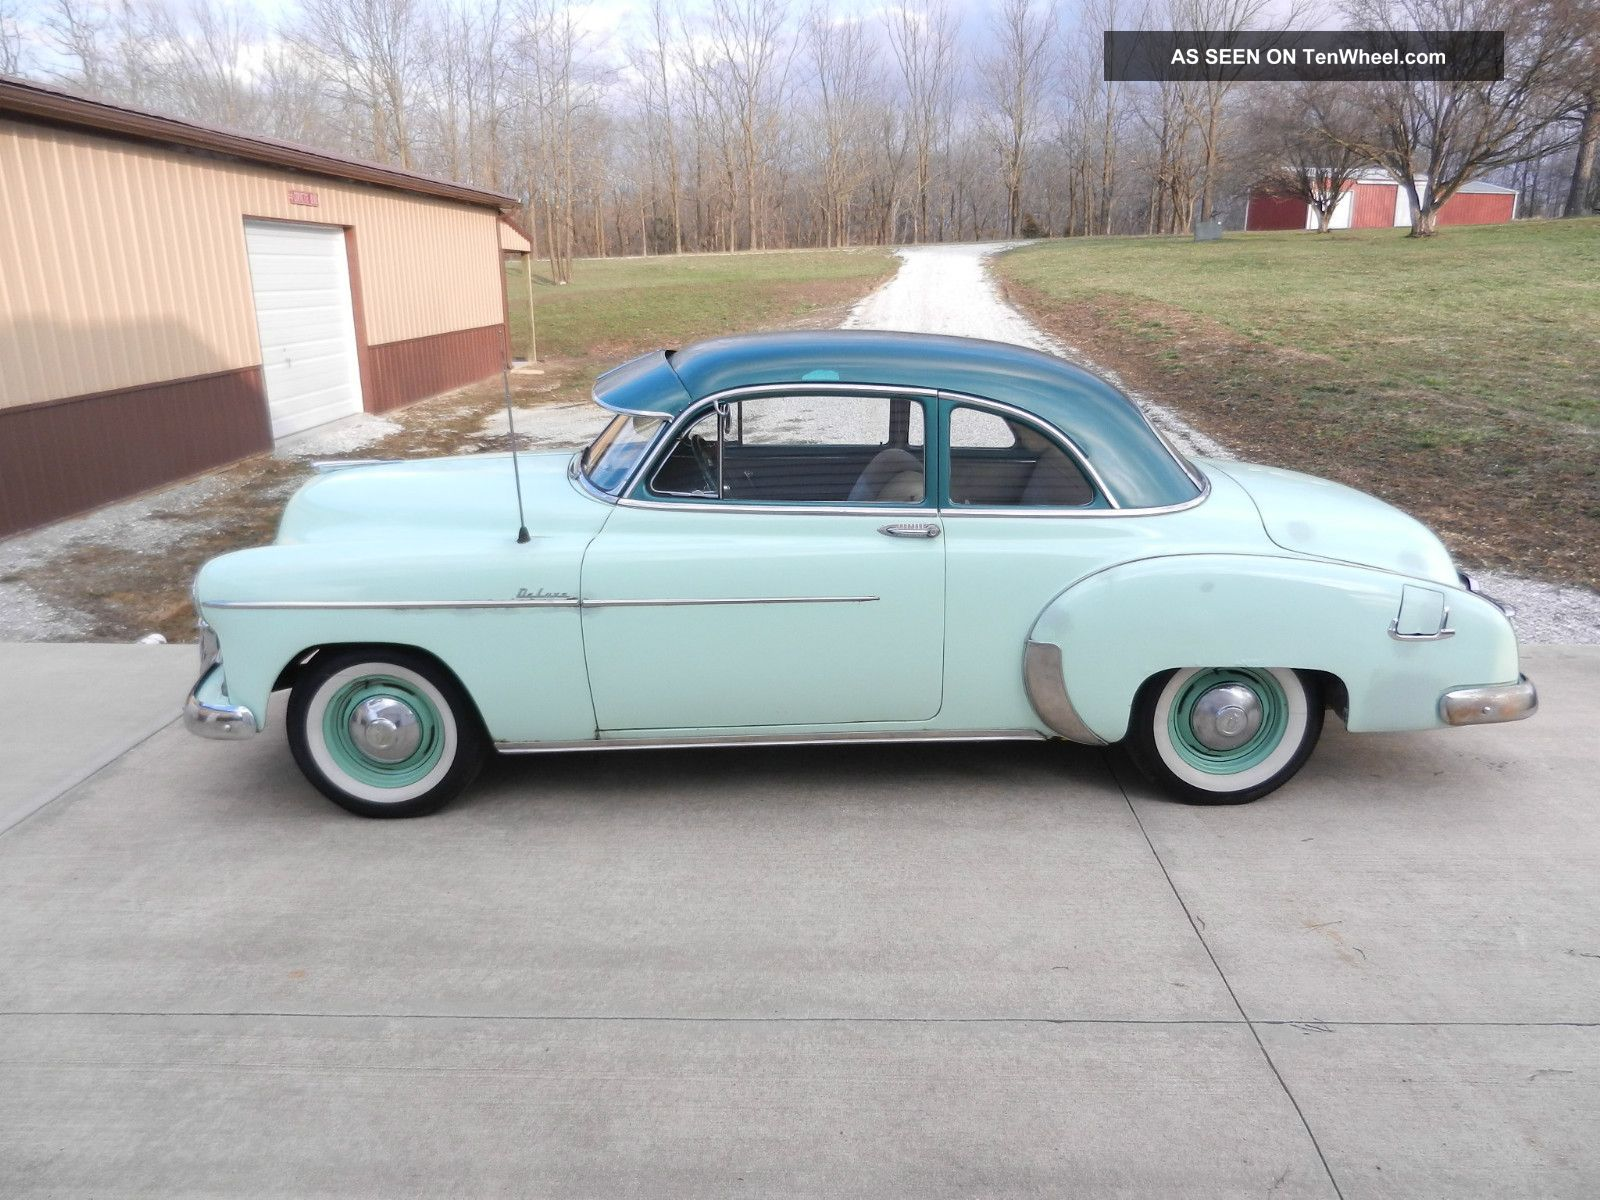 1950 chevrolet deluxe sport coupe two door six cylinder